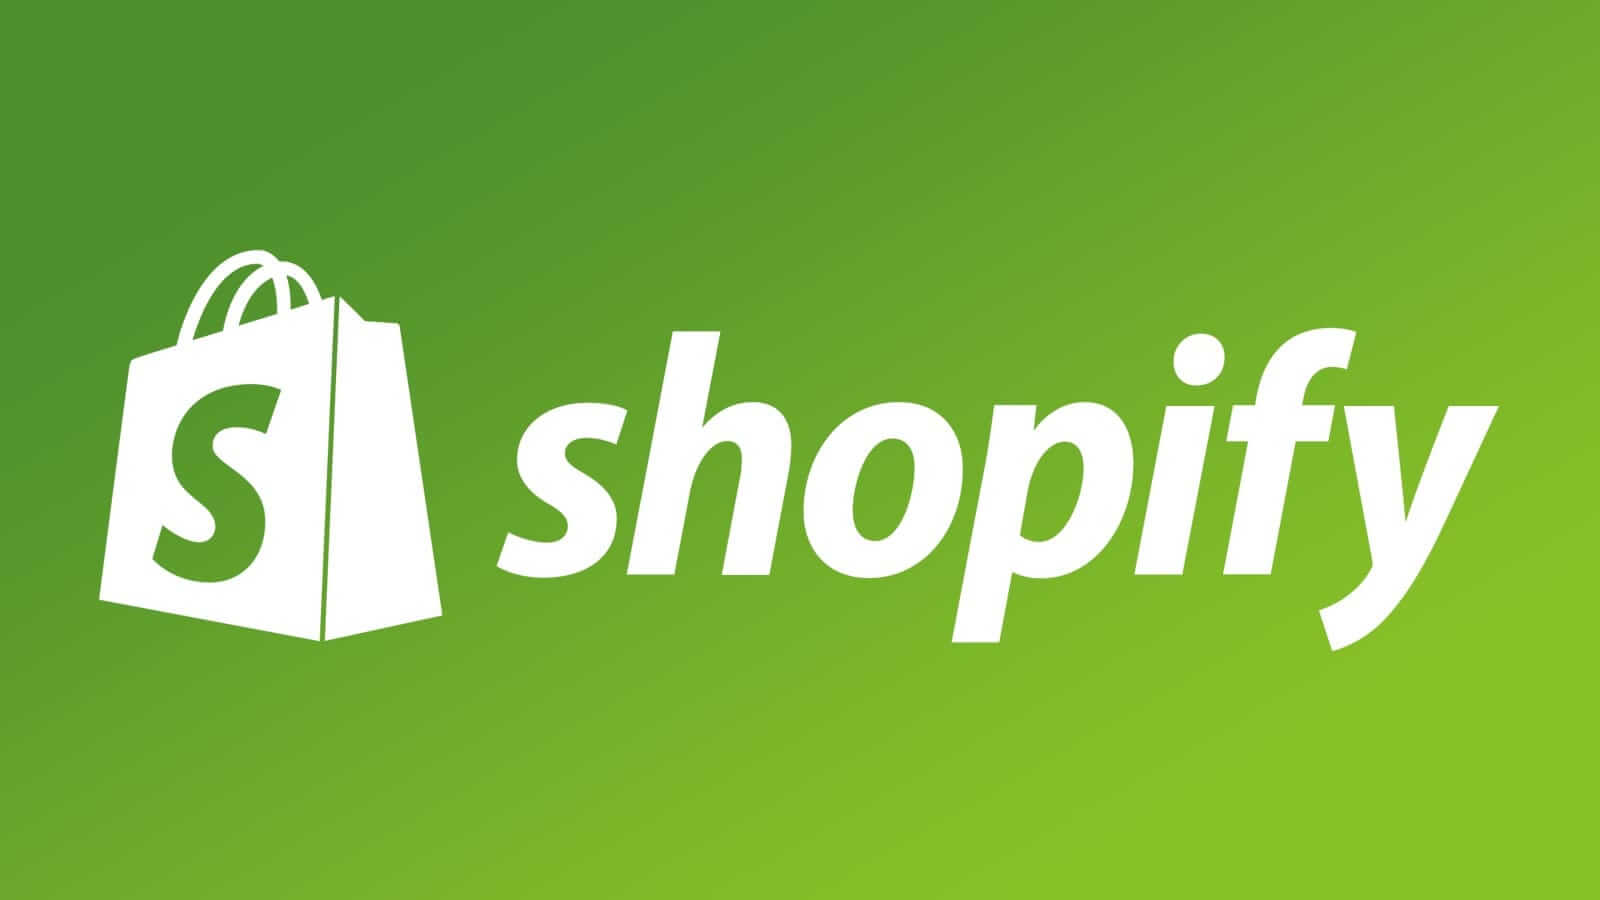 Shopify Web Design Continues Its Innovations & Popularity